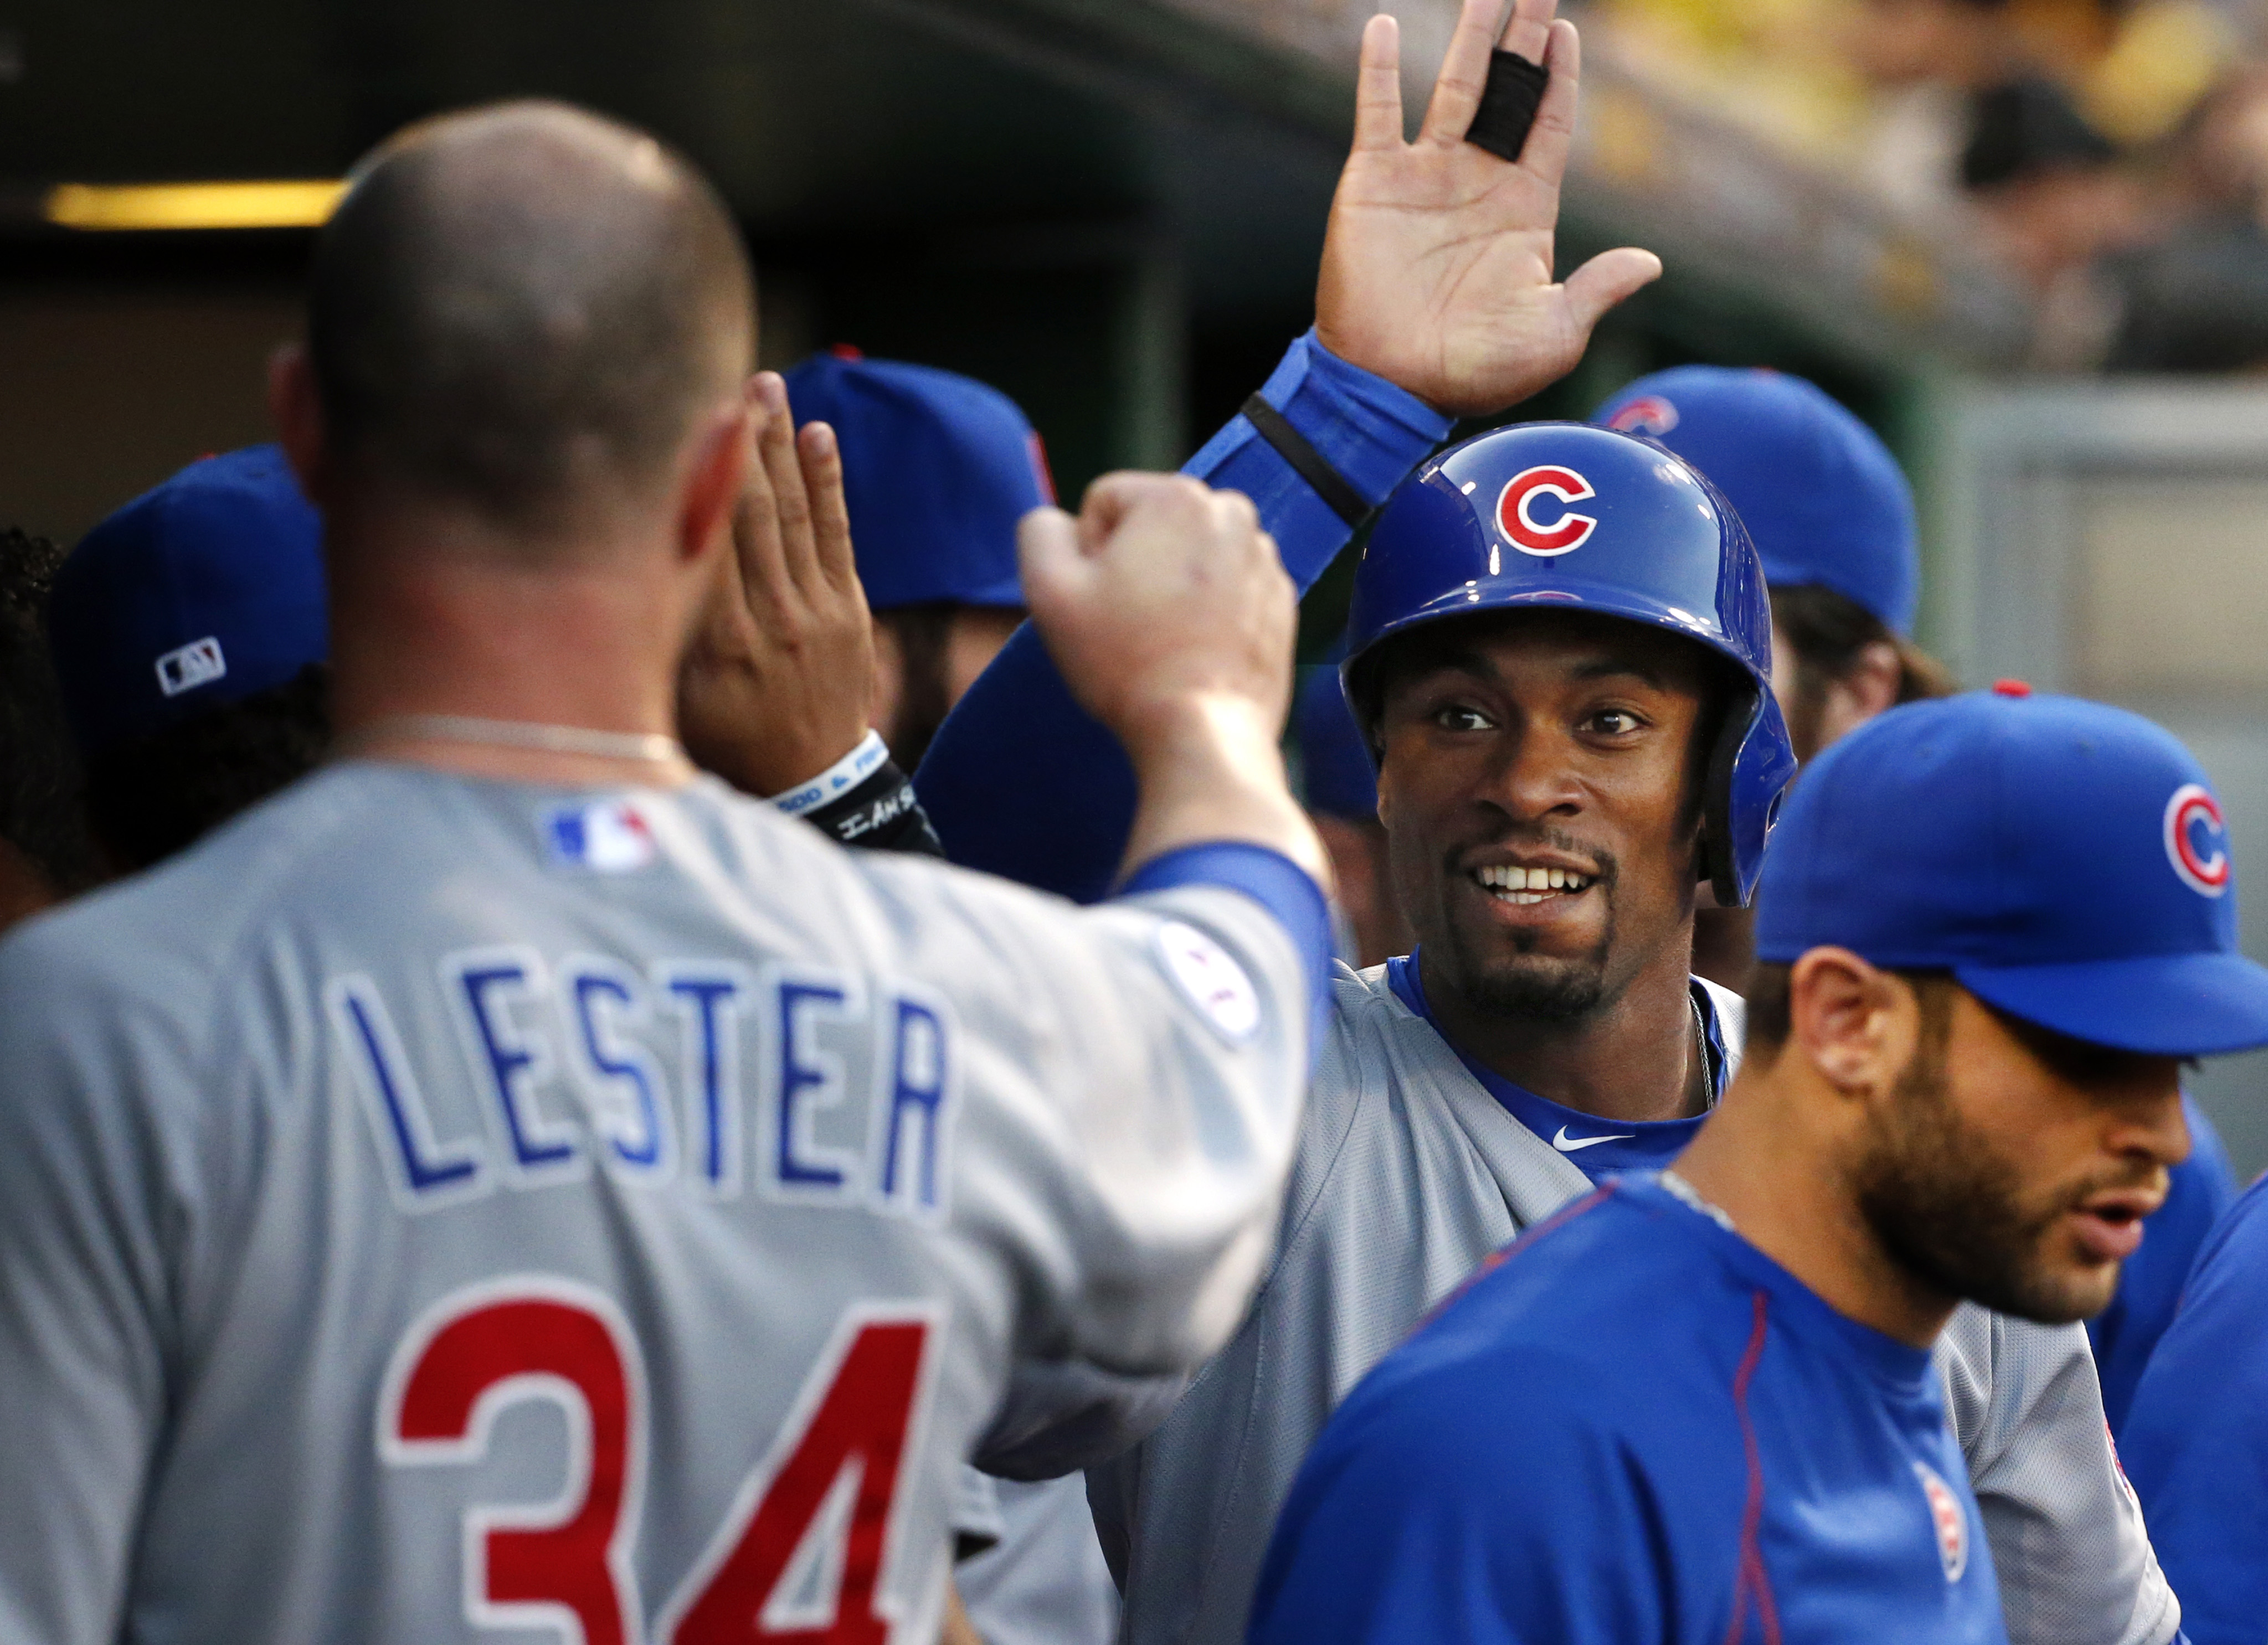 FILE - In this Tuesday, Sept. 15, 2015 file photo, Chicago Cubs' Austin Jackson, second right, celebrates with pitcher Jon Lester after scoring during the first inning of the second baseball game of a doubleheader against the Pittsburgh Pirates in Pittsbu